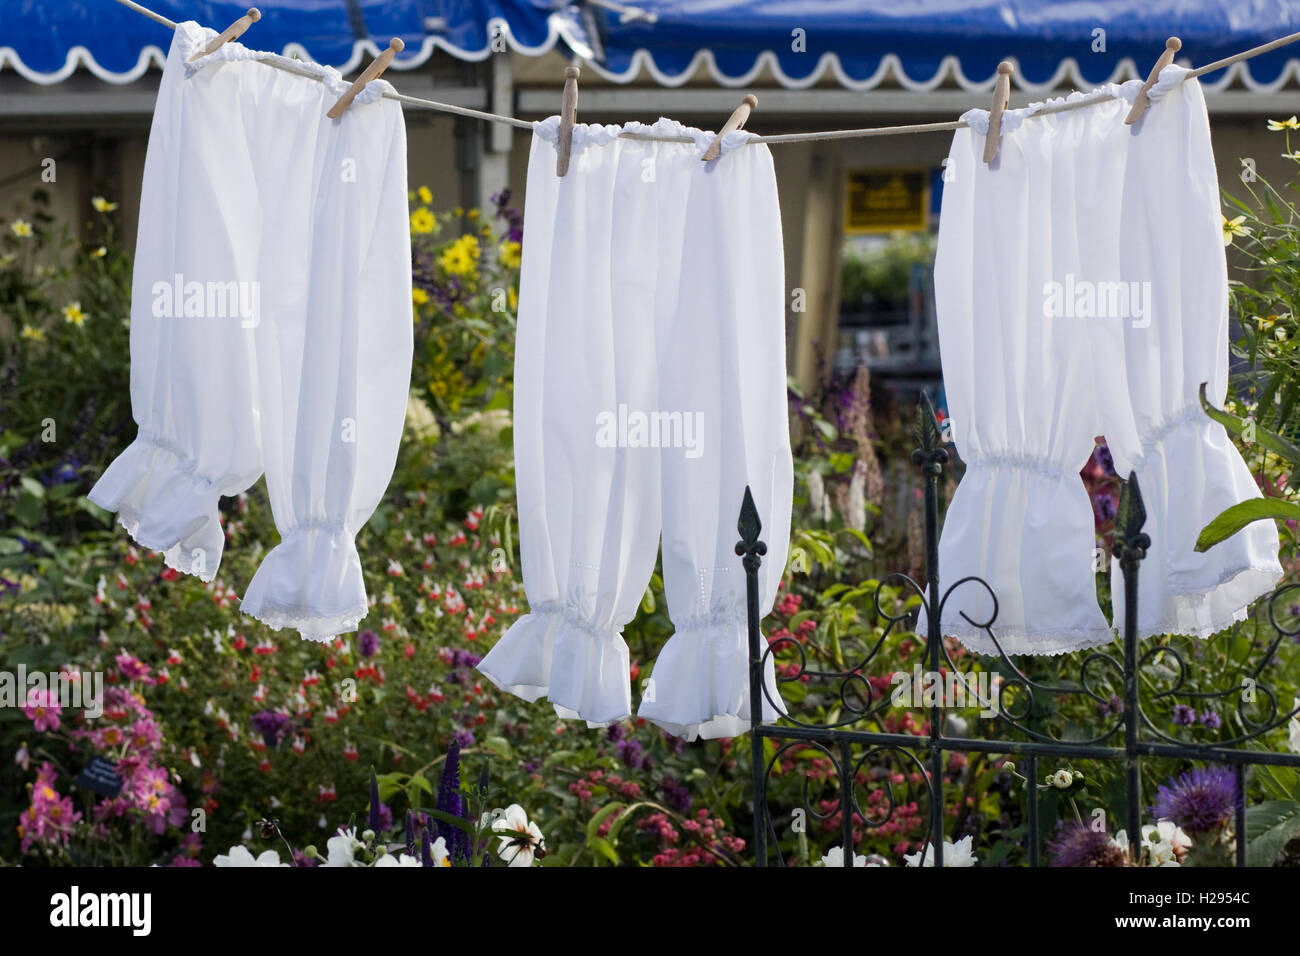 Laundry Hanging on a washing line in the garden - Stock Image